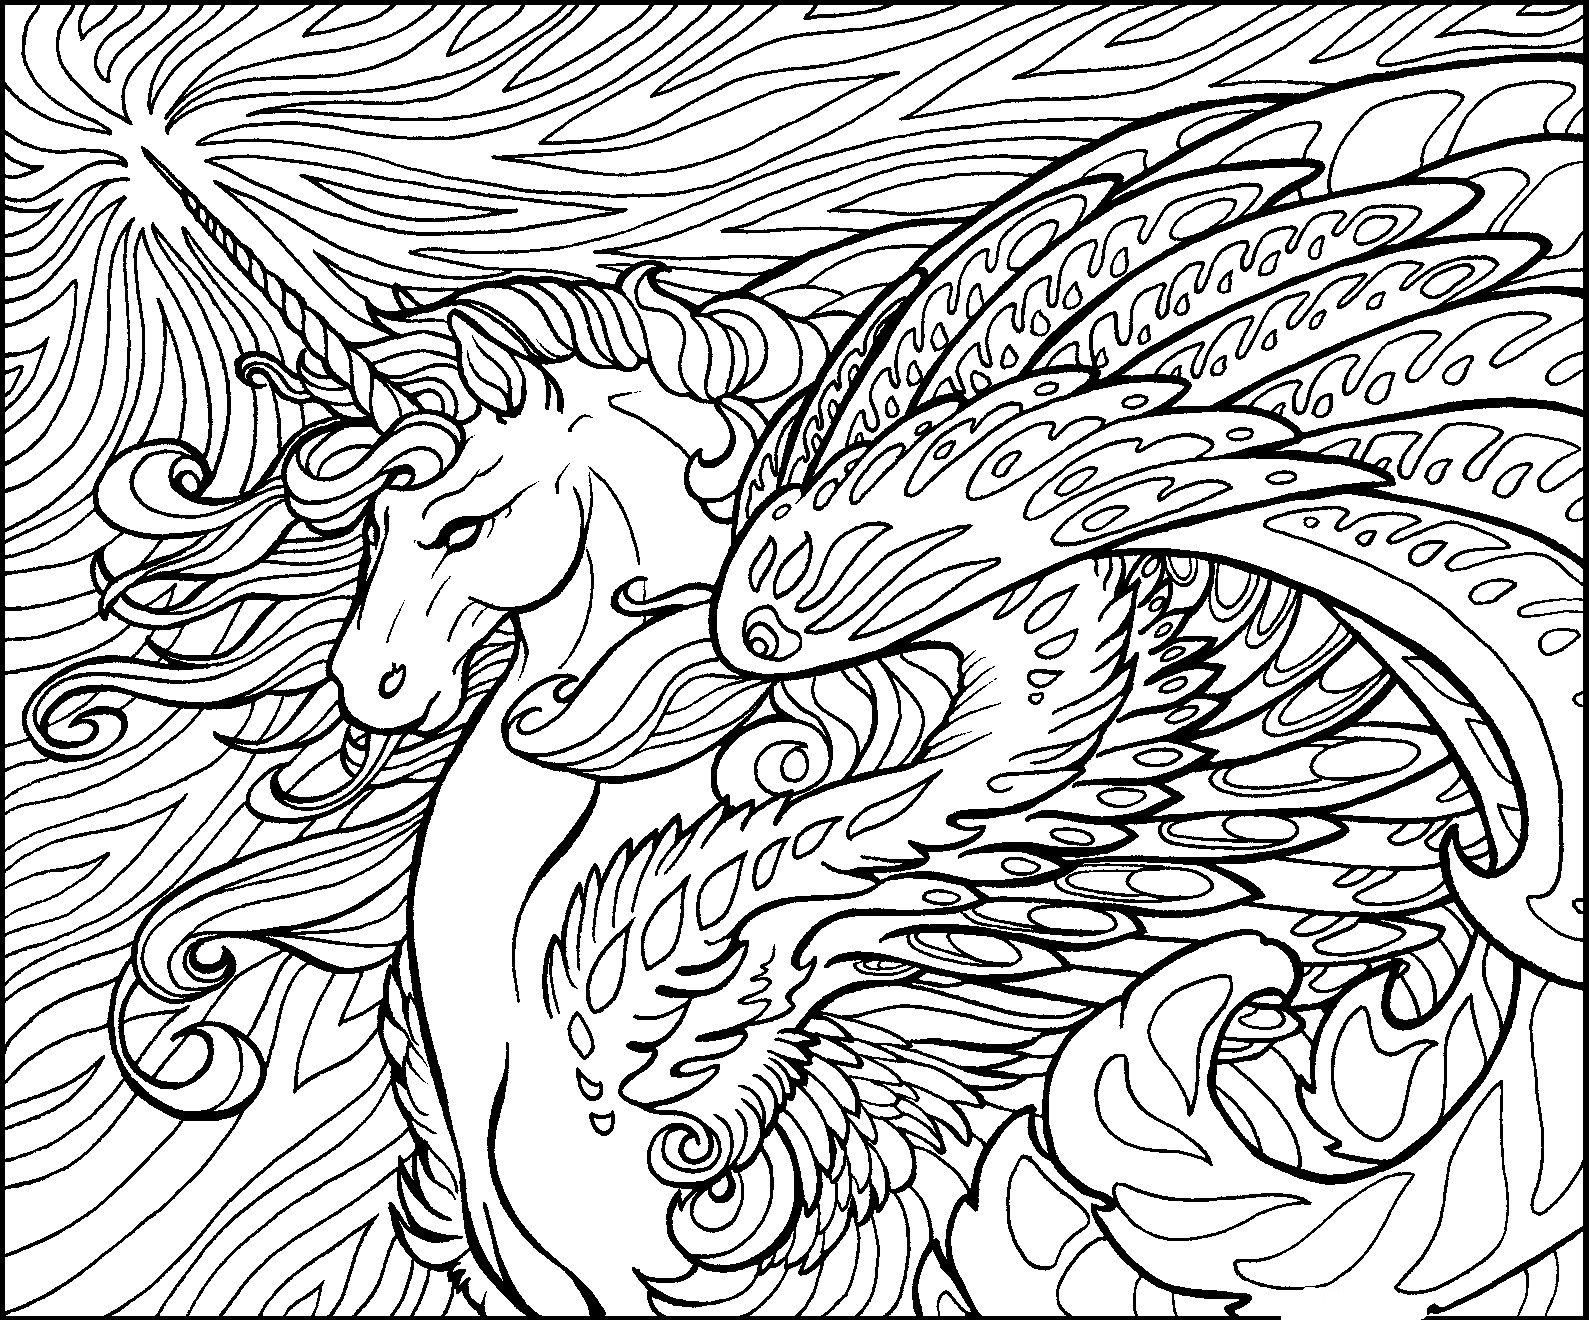 fantasy coloring pages fantasy animal coloring pages at getdrawings free download pages coloring fantasy 1 1